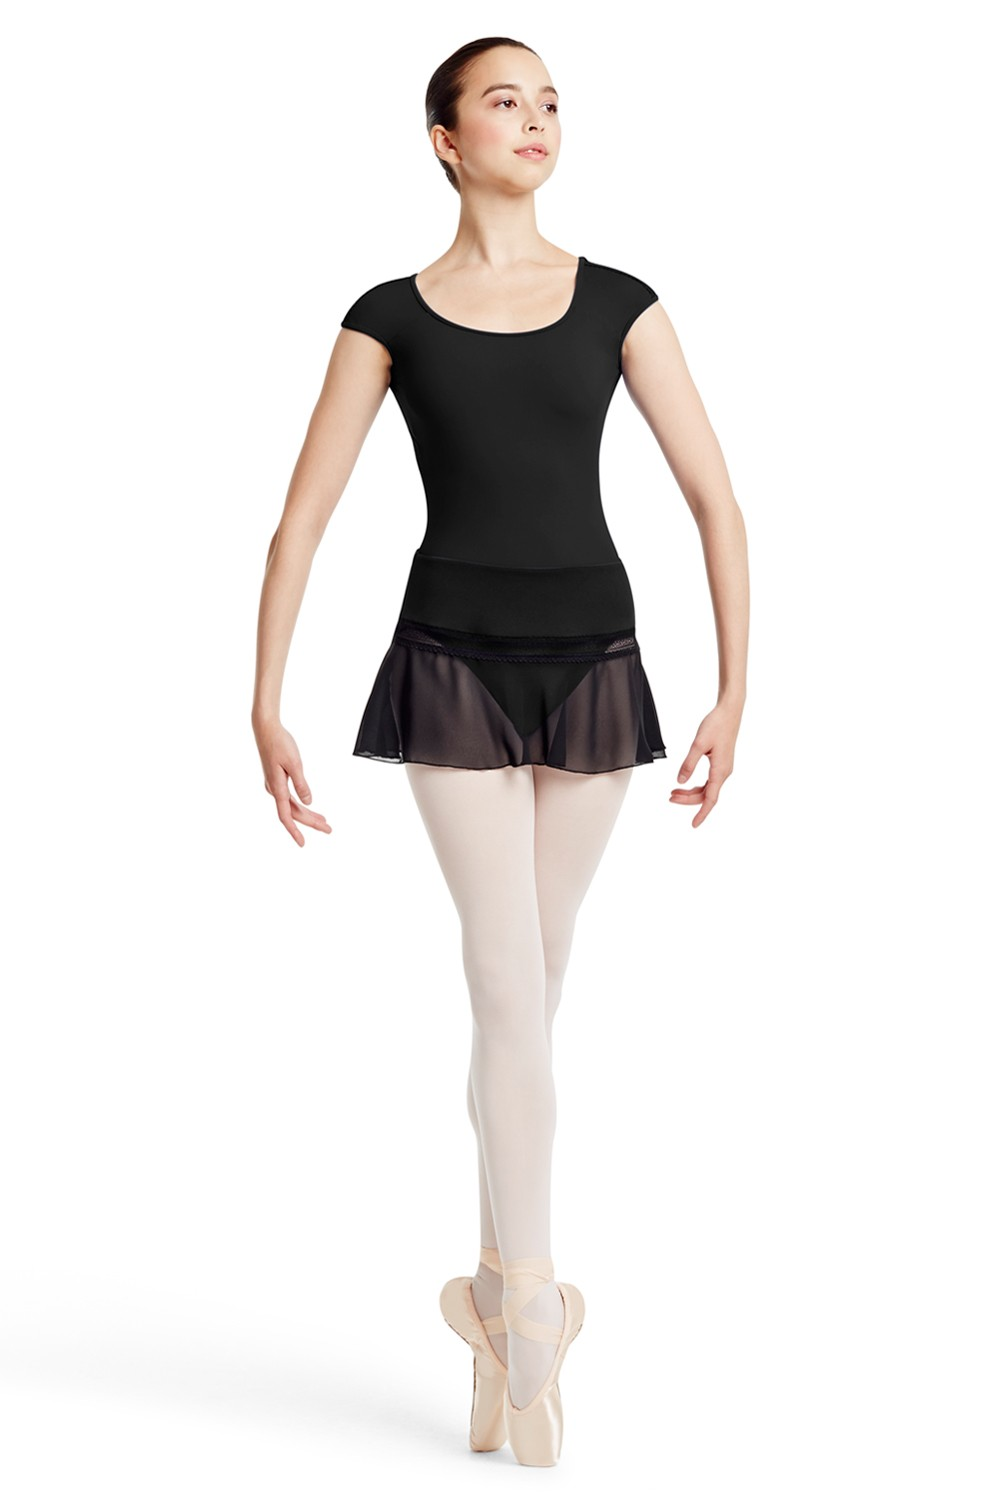 Shldr Trim Cap Sleeve Women's Dance Leotards